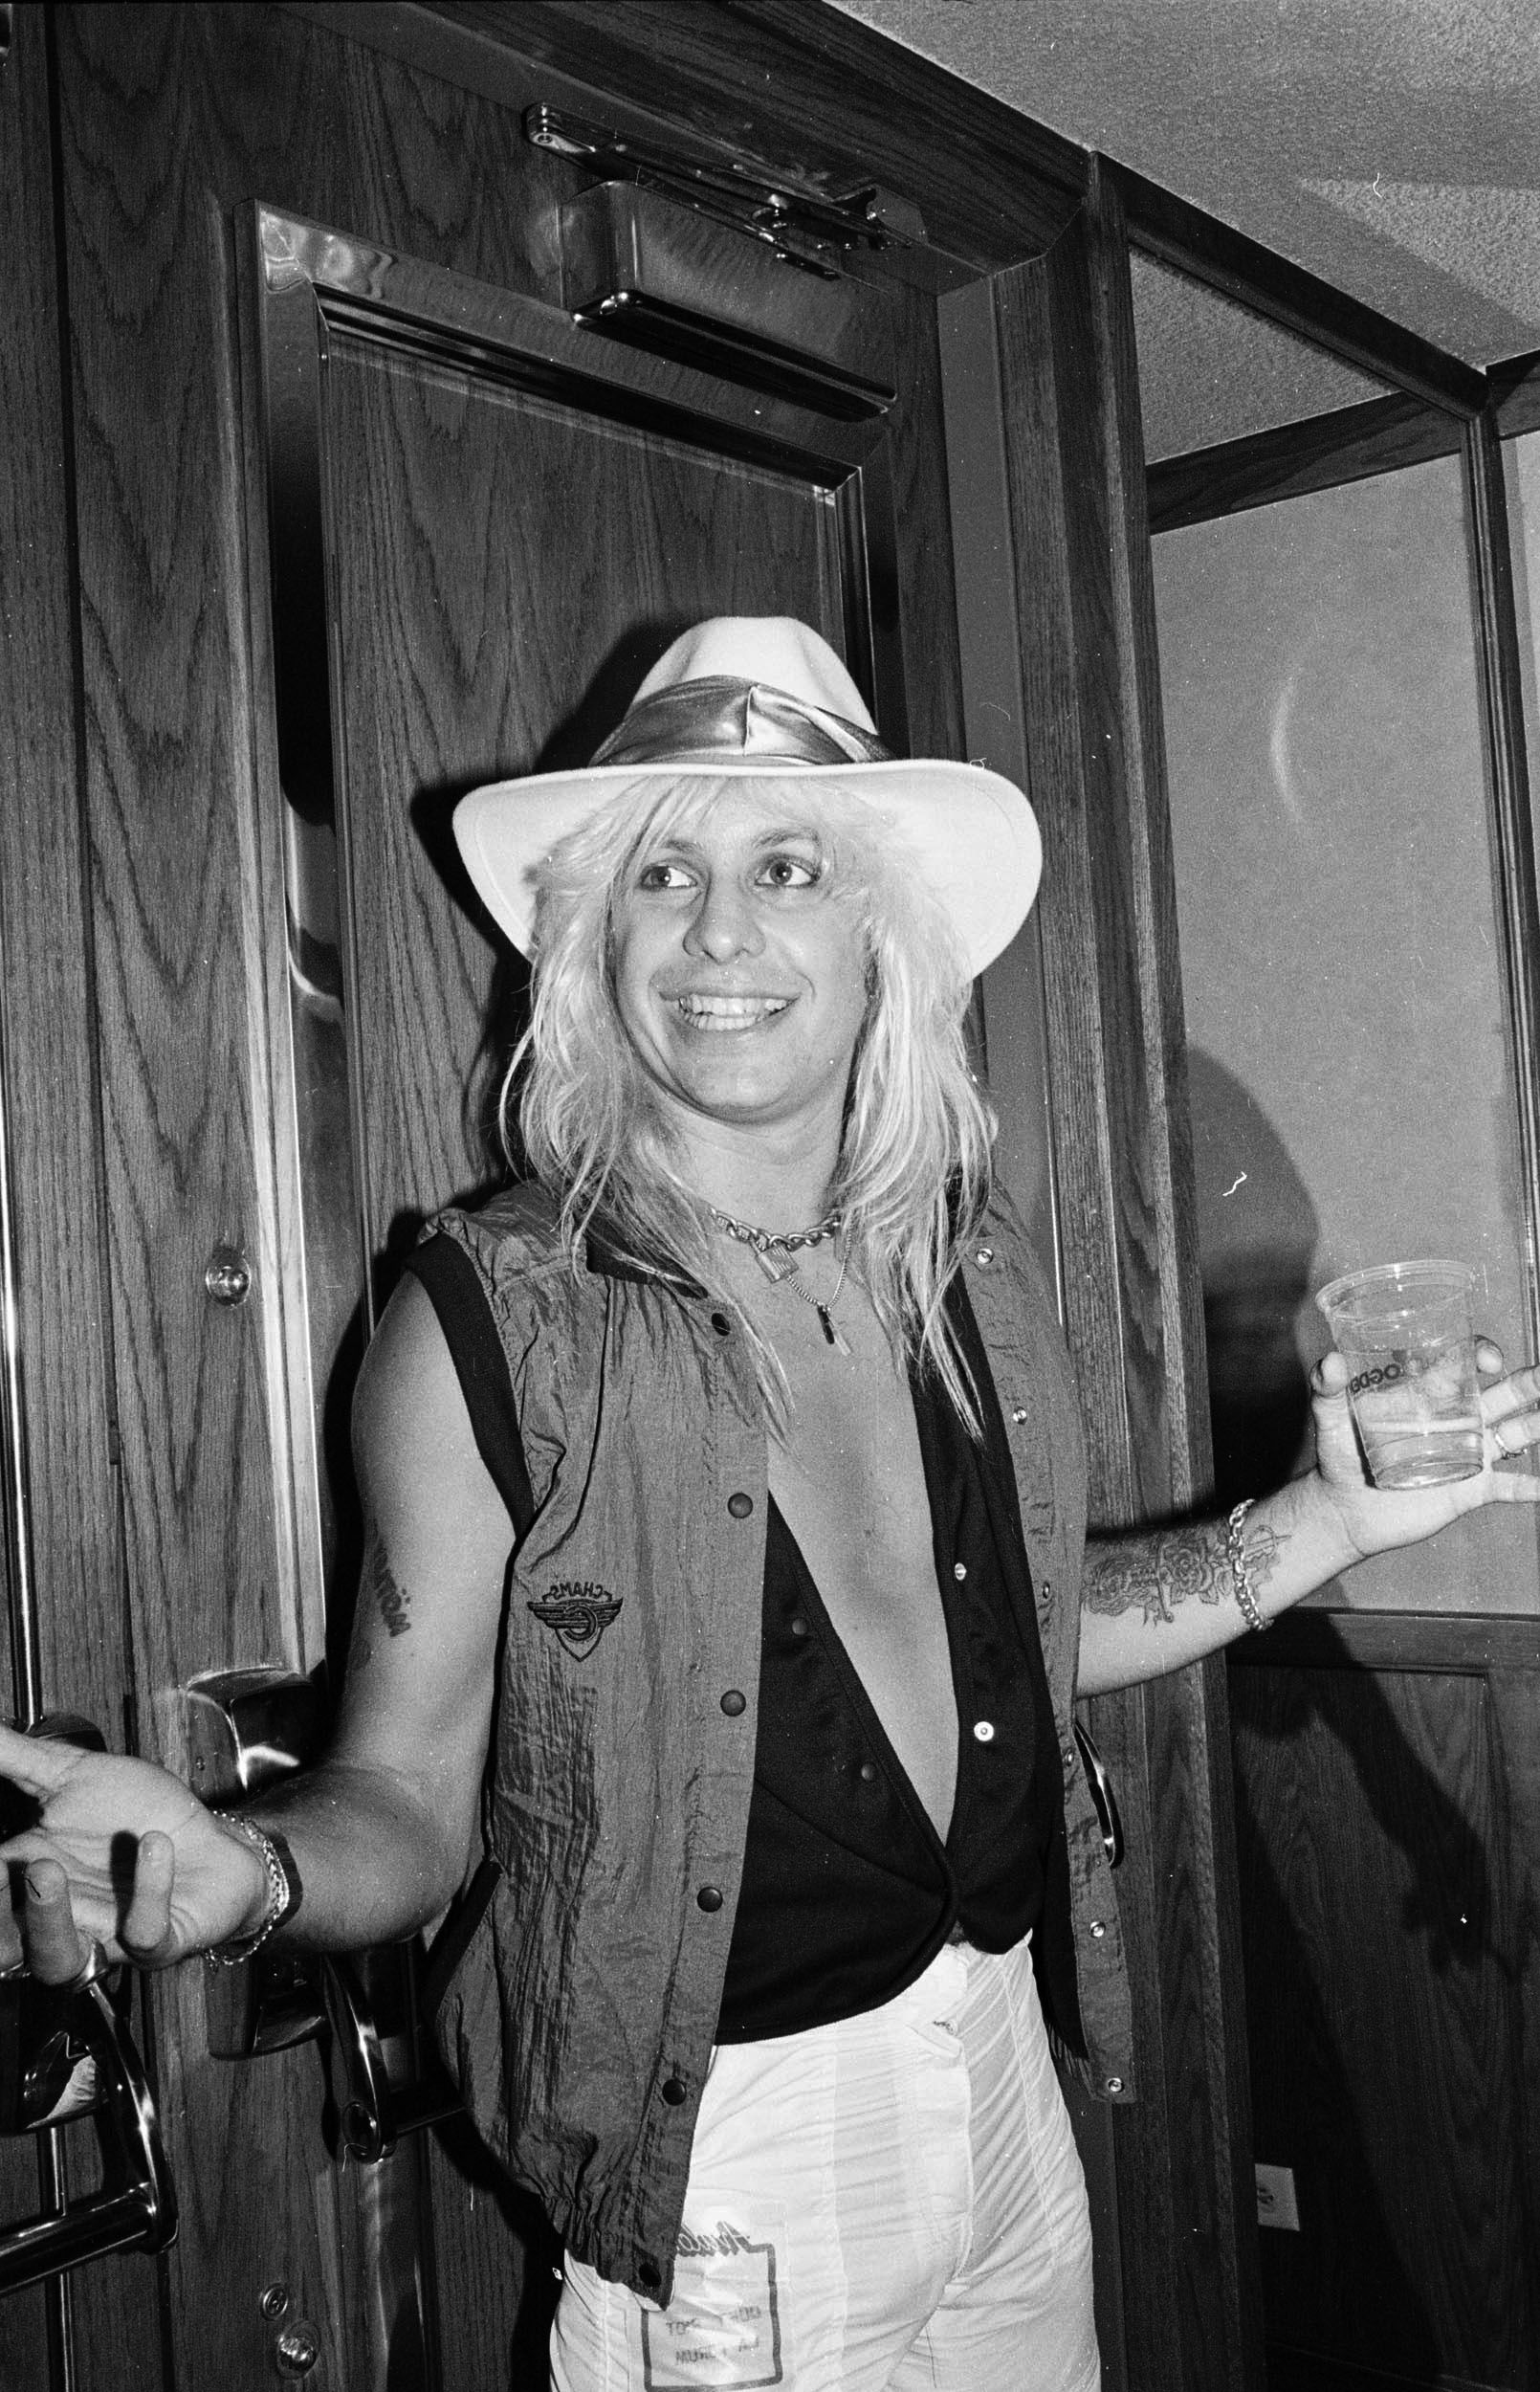 Vince Neil poses backstage at a Quiet Riot concert at the Forum on September 29, 1984.